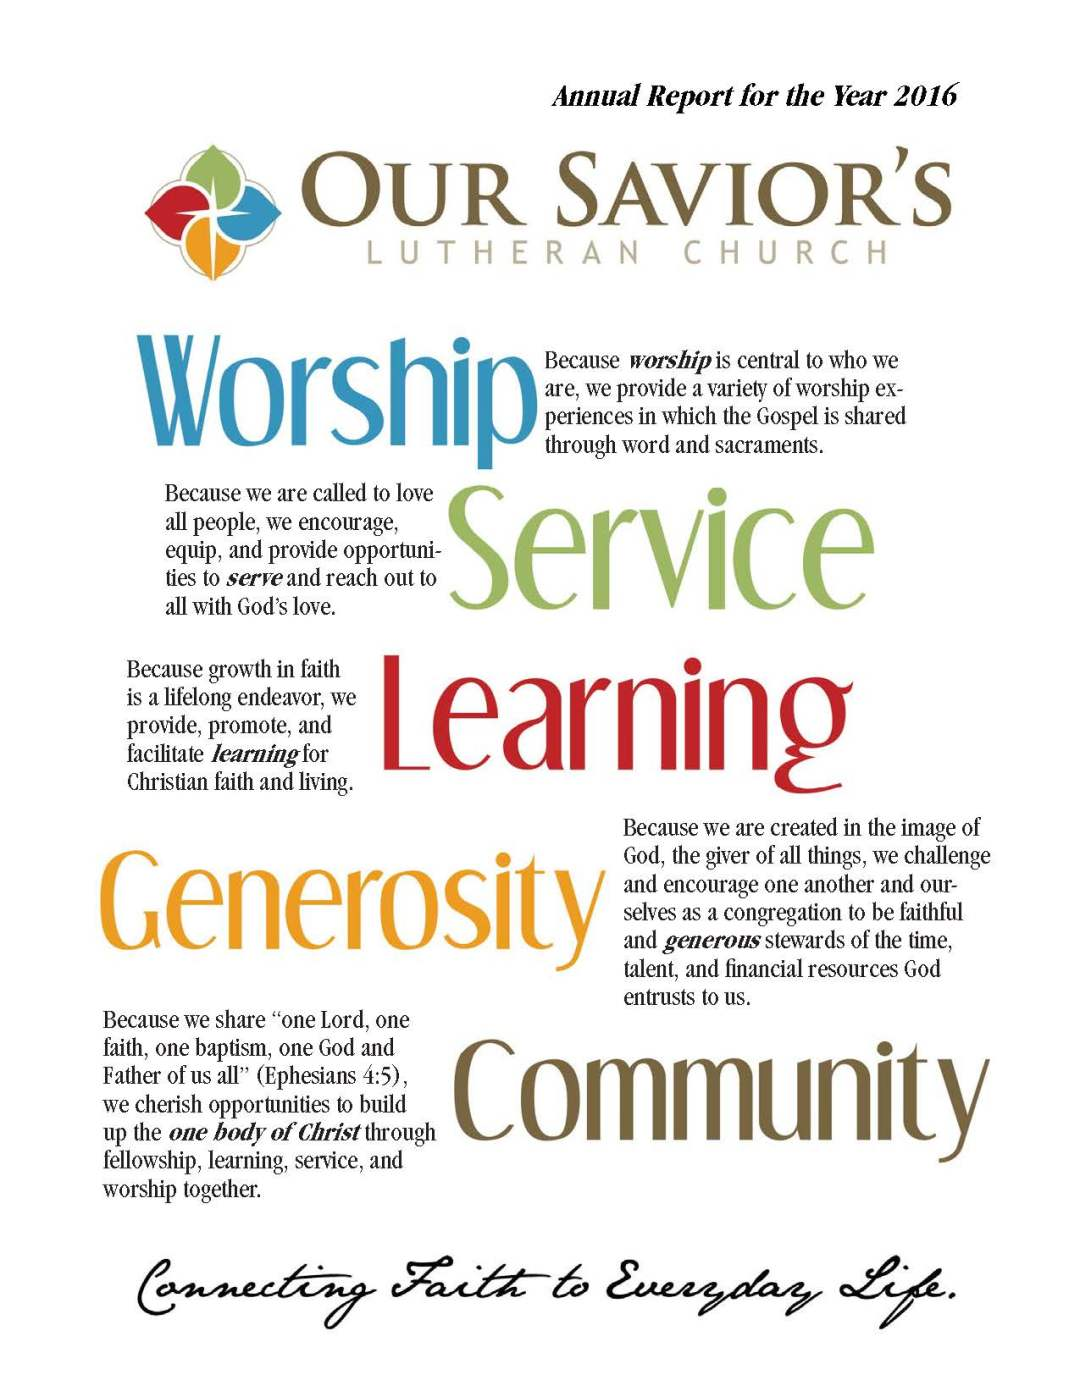 Our Savior's Lutheran Church Annual Report cover